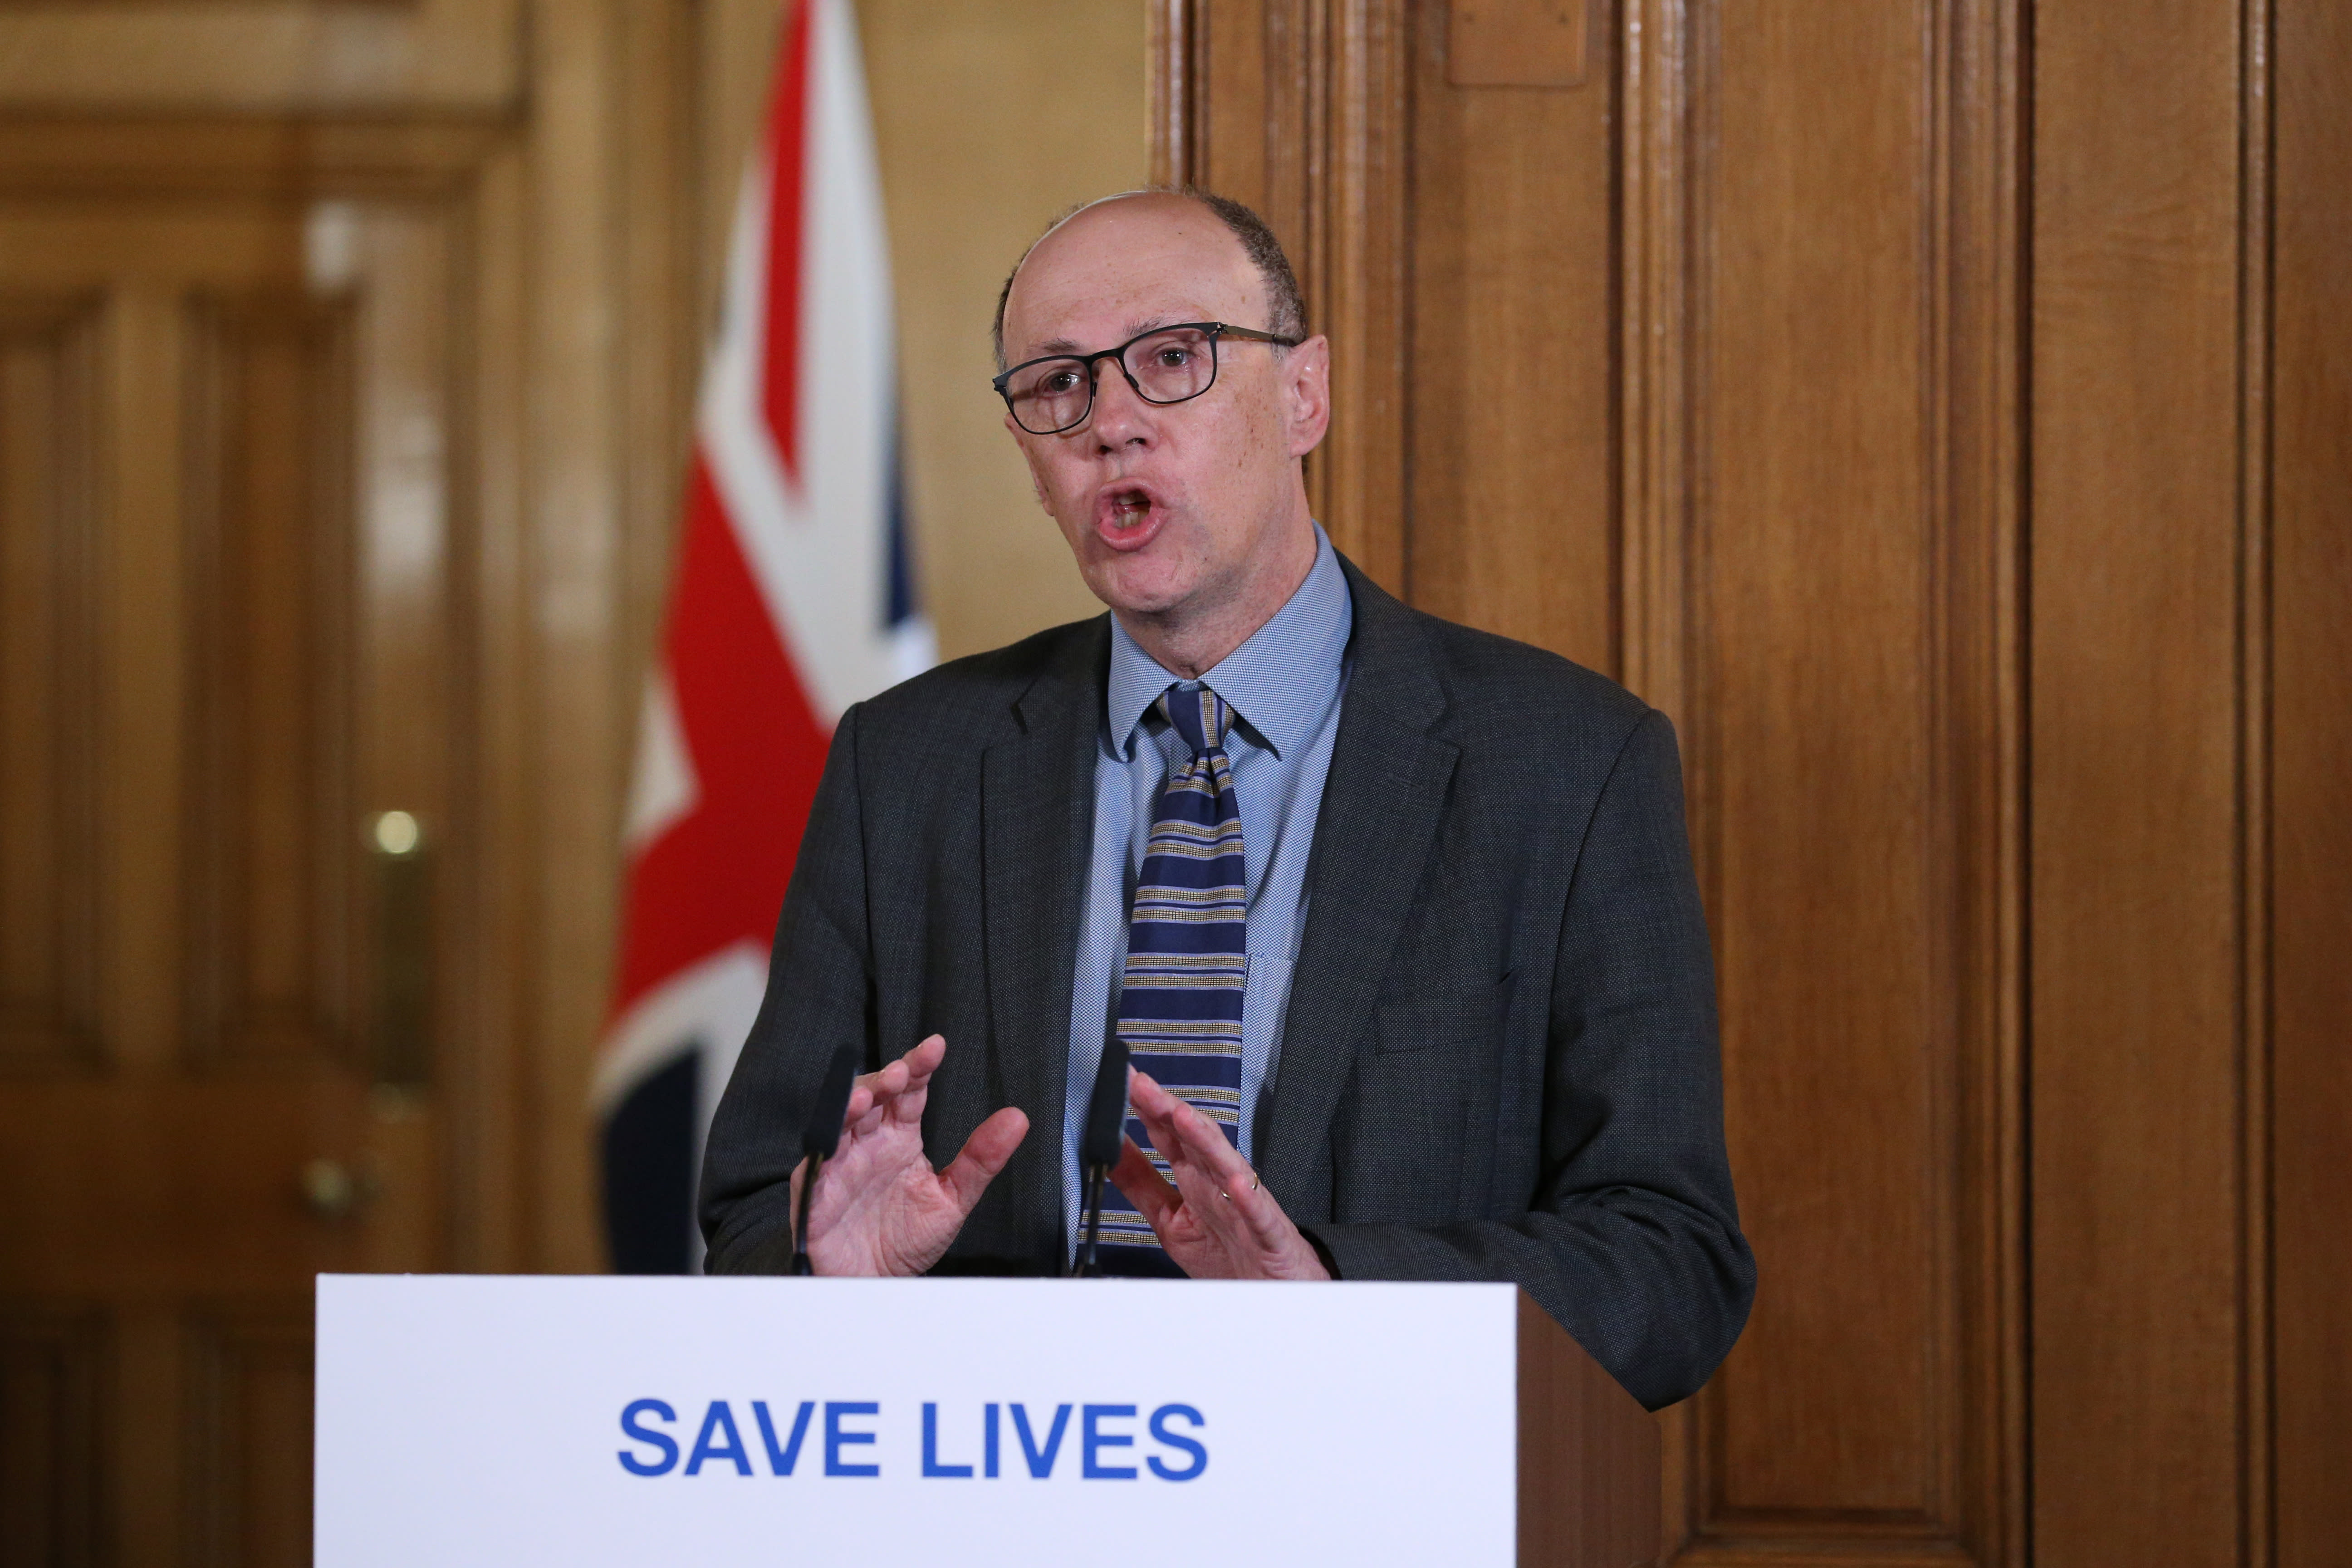 National Medical Director at NHS England Stephen Powis speaks during the daily press conference giving the latest update on the Coronavirus pandemic, at Downing Street in London, Saturday March 21, 2020.. For some people the COVID-19 coronavirus causes mild or moderate symptoms, but for others it causes severe illness. (Jonathan Brady / Pool via AP)